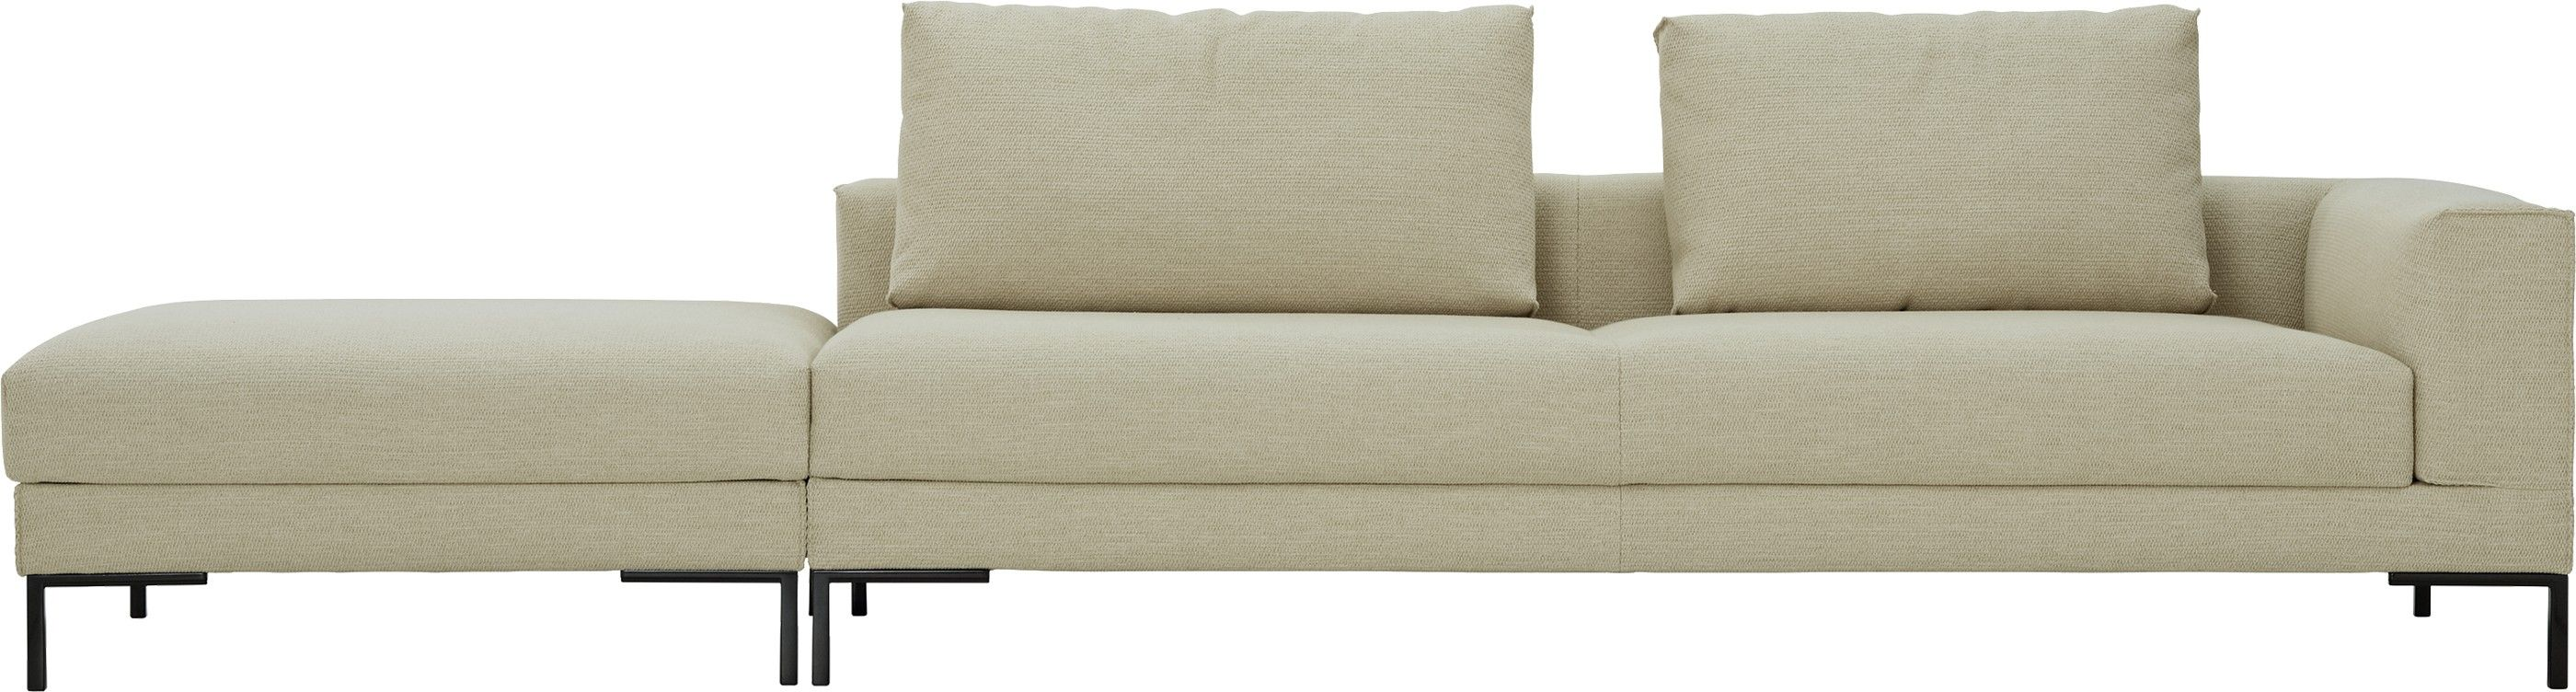 Design On Stock Poef.Design On Stock Aikon Awesome Aikon Lounge Design On Stock In